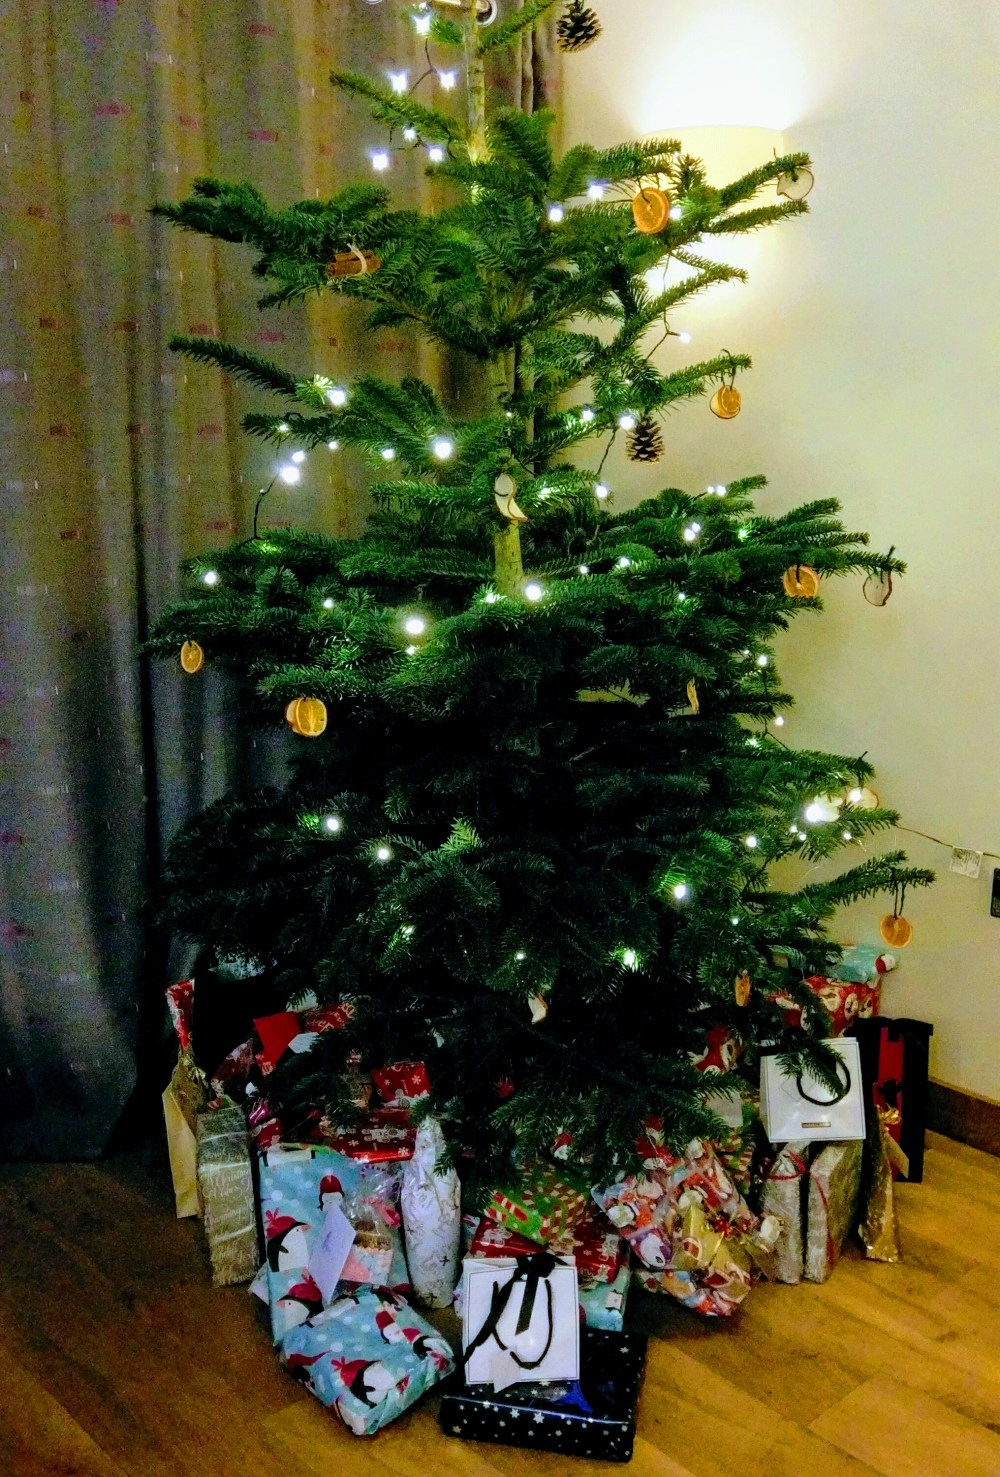 A christmas tree with presents beneath